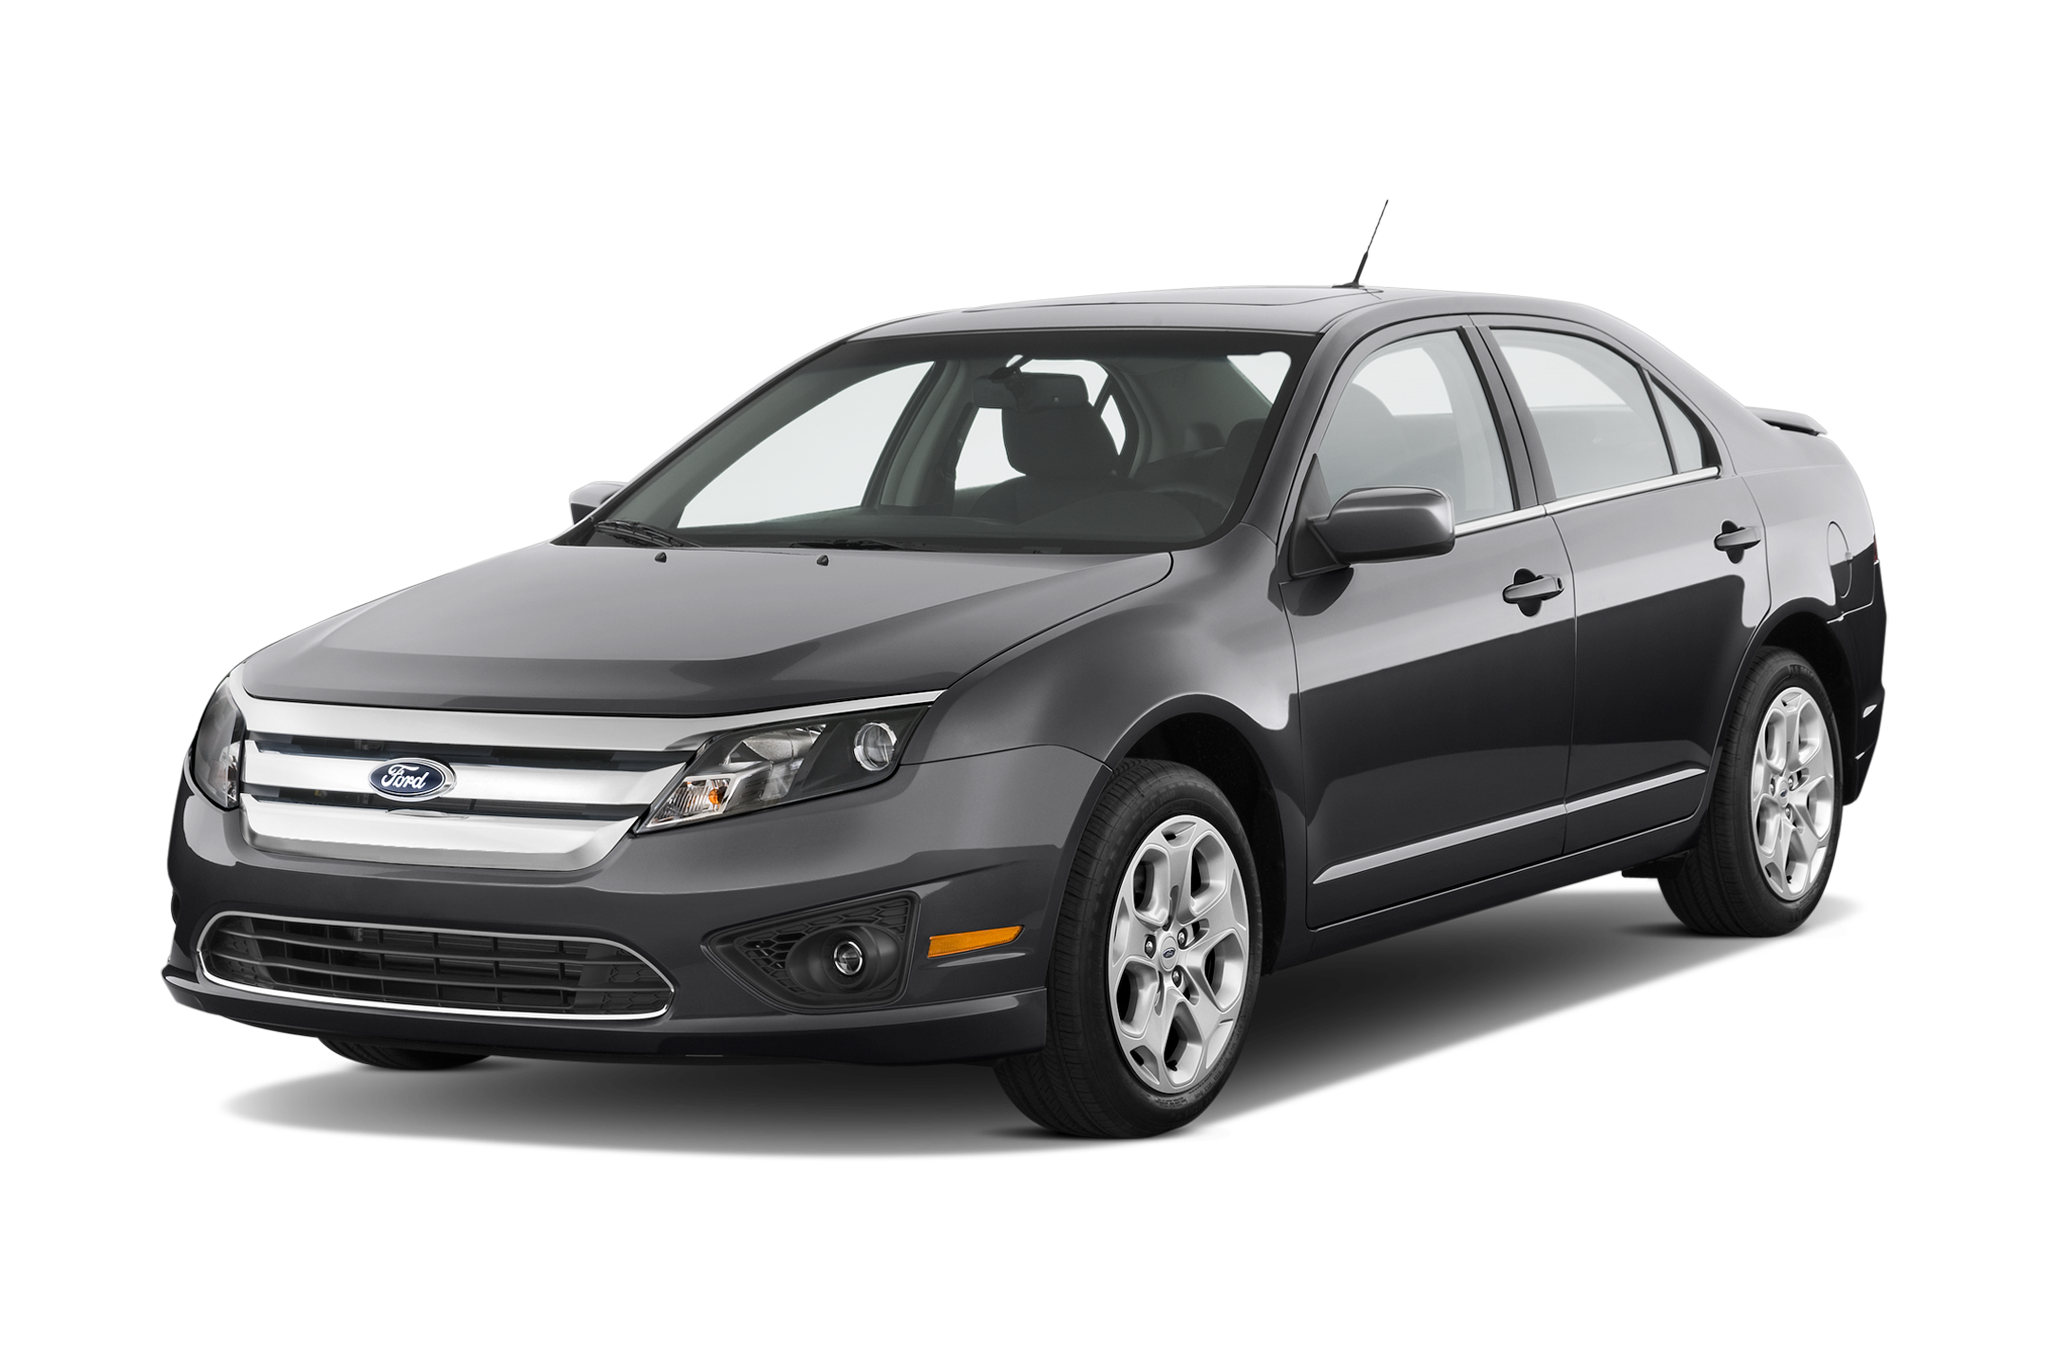 Ford Fusion (North America) I 2005 - 2012 Sedan #1